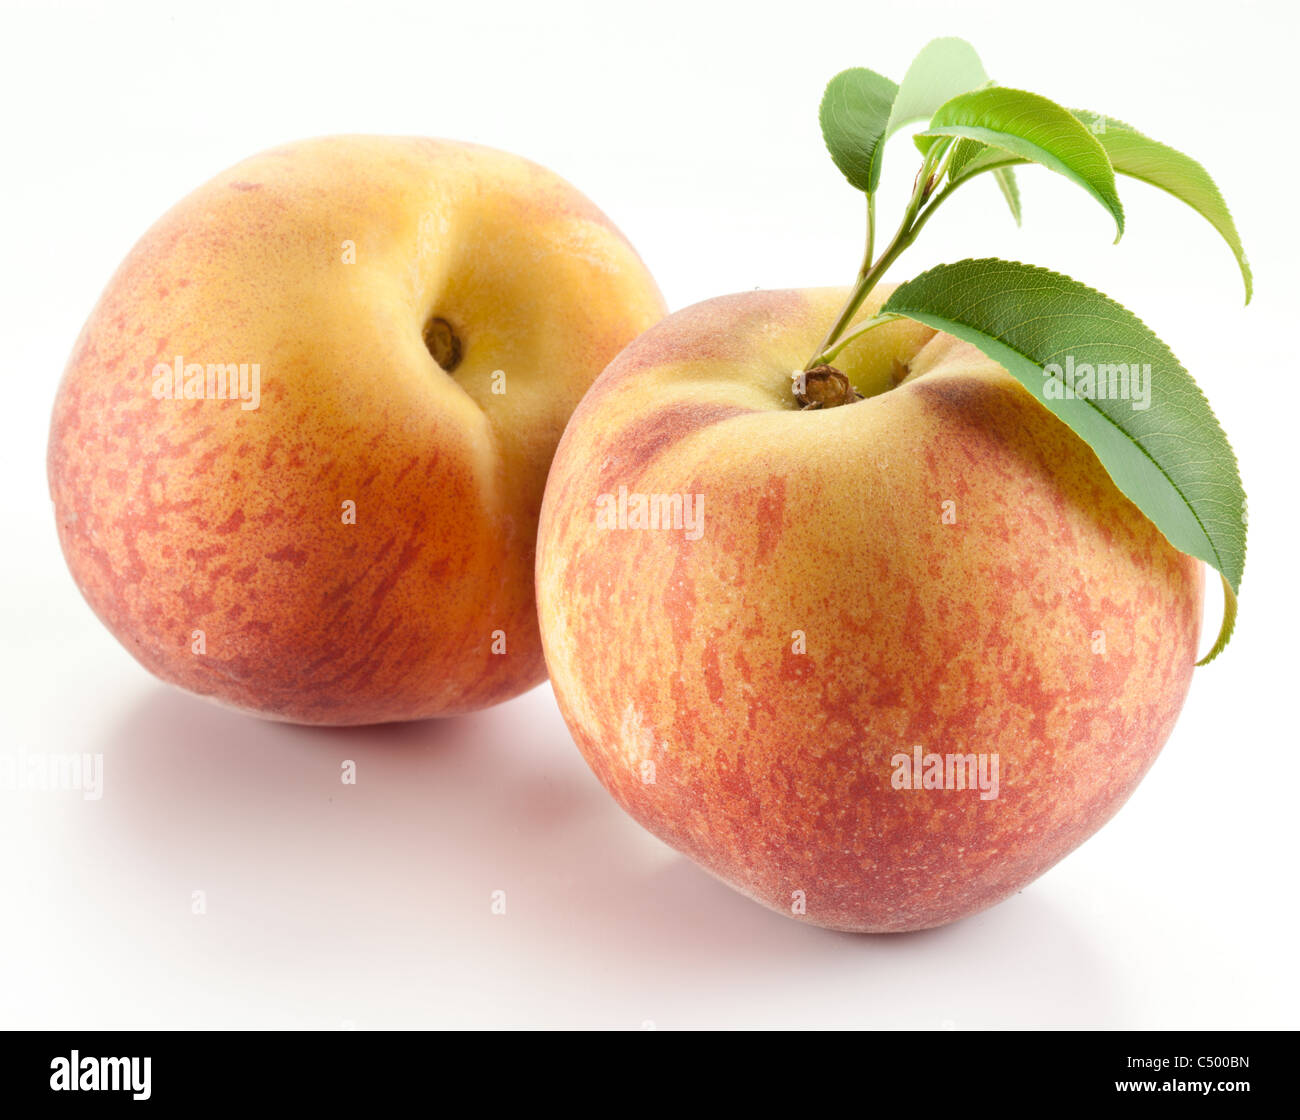 Two ripe peach with leaves on white background. - Stock Image